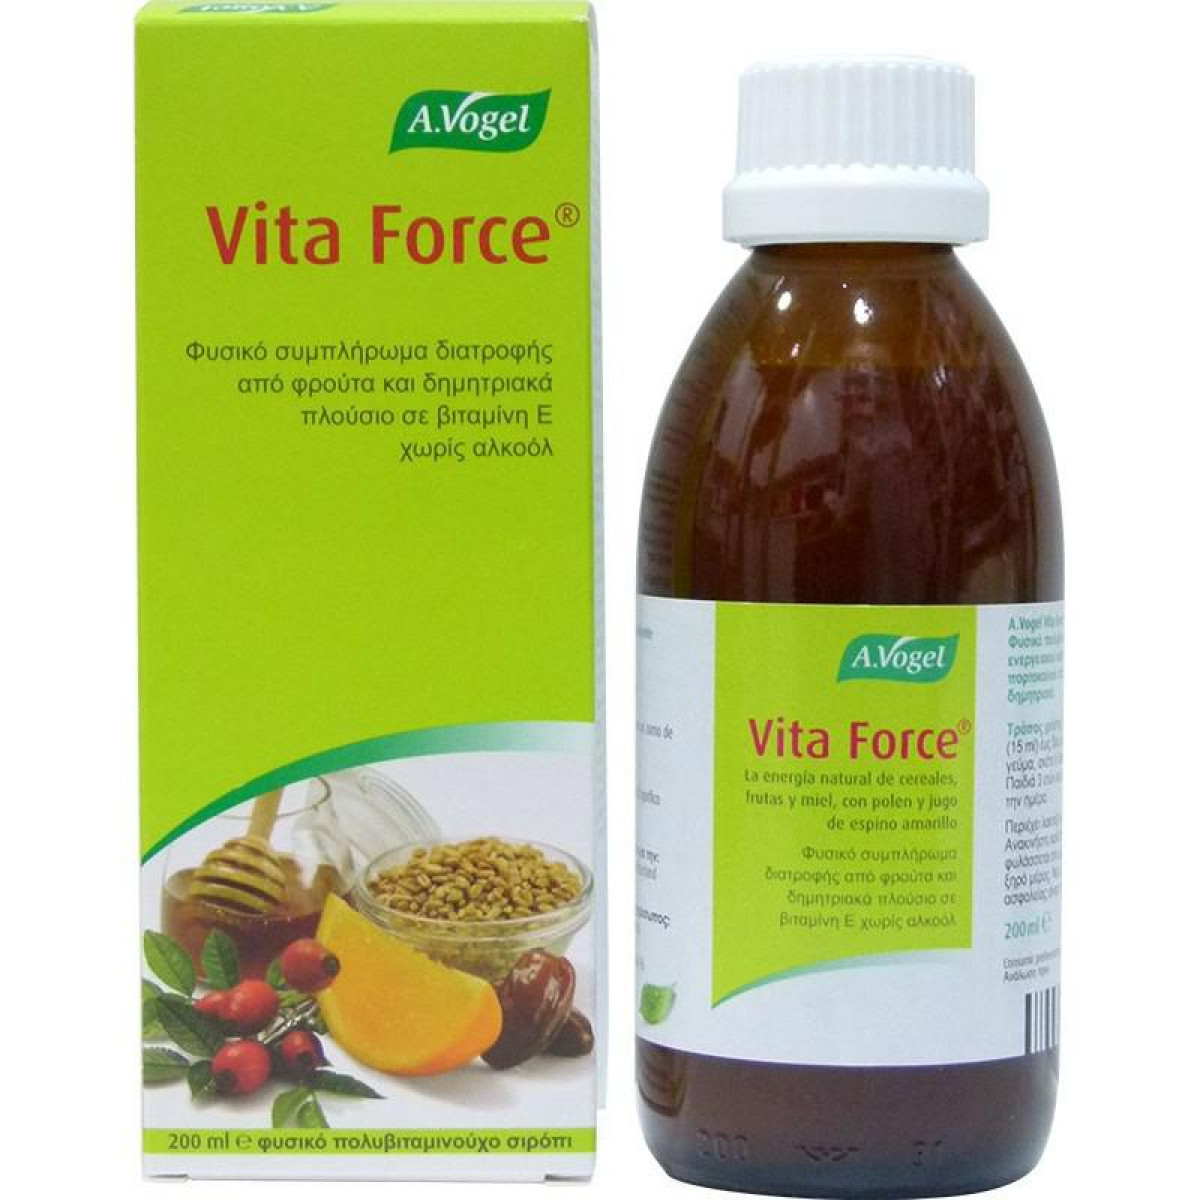 Vita force syrup